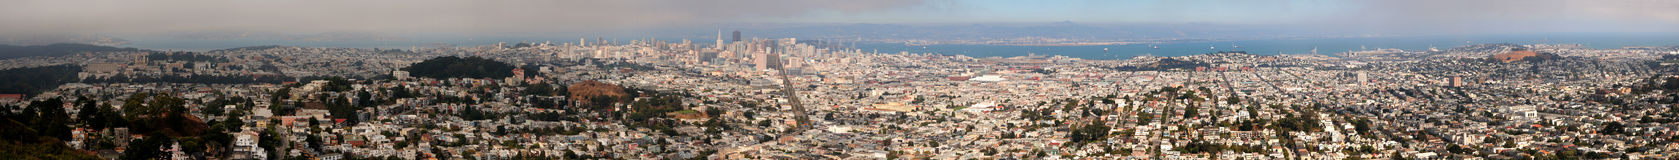 Panorama of San Francisco Stock Images